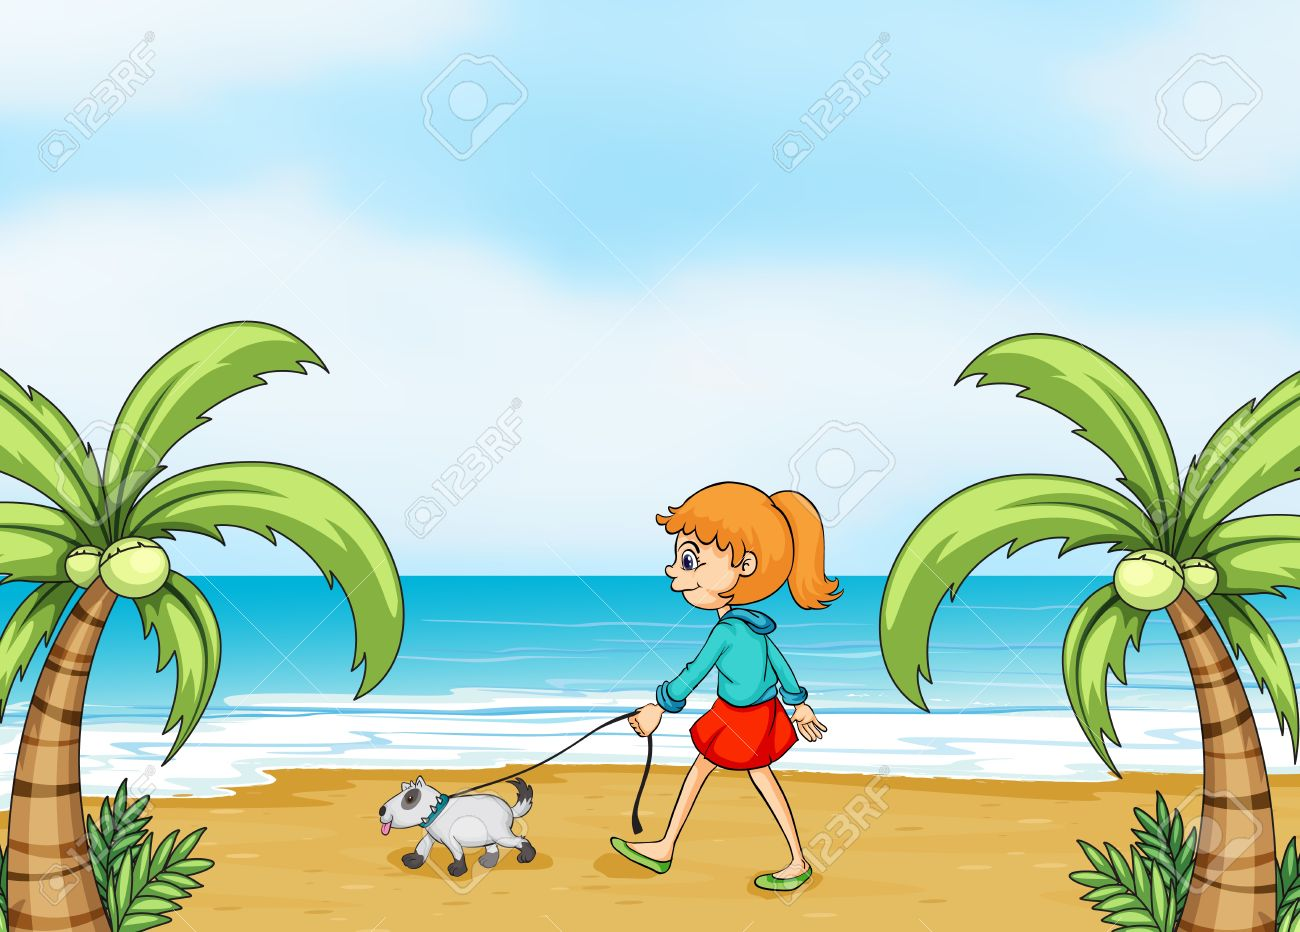 Walking On The Beach Clip Art